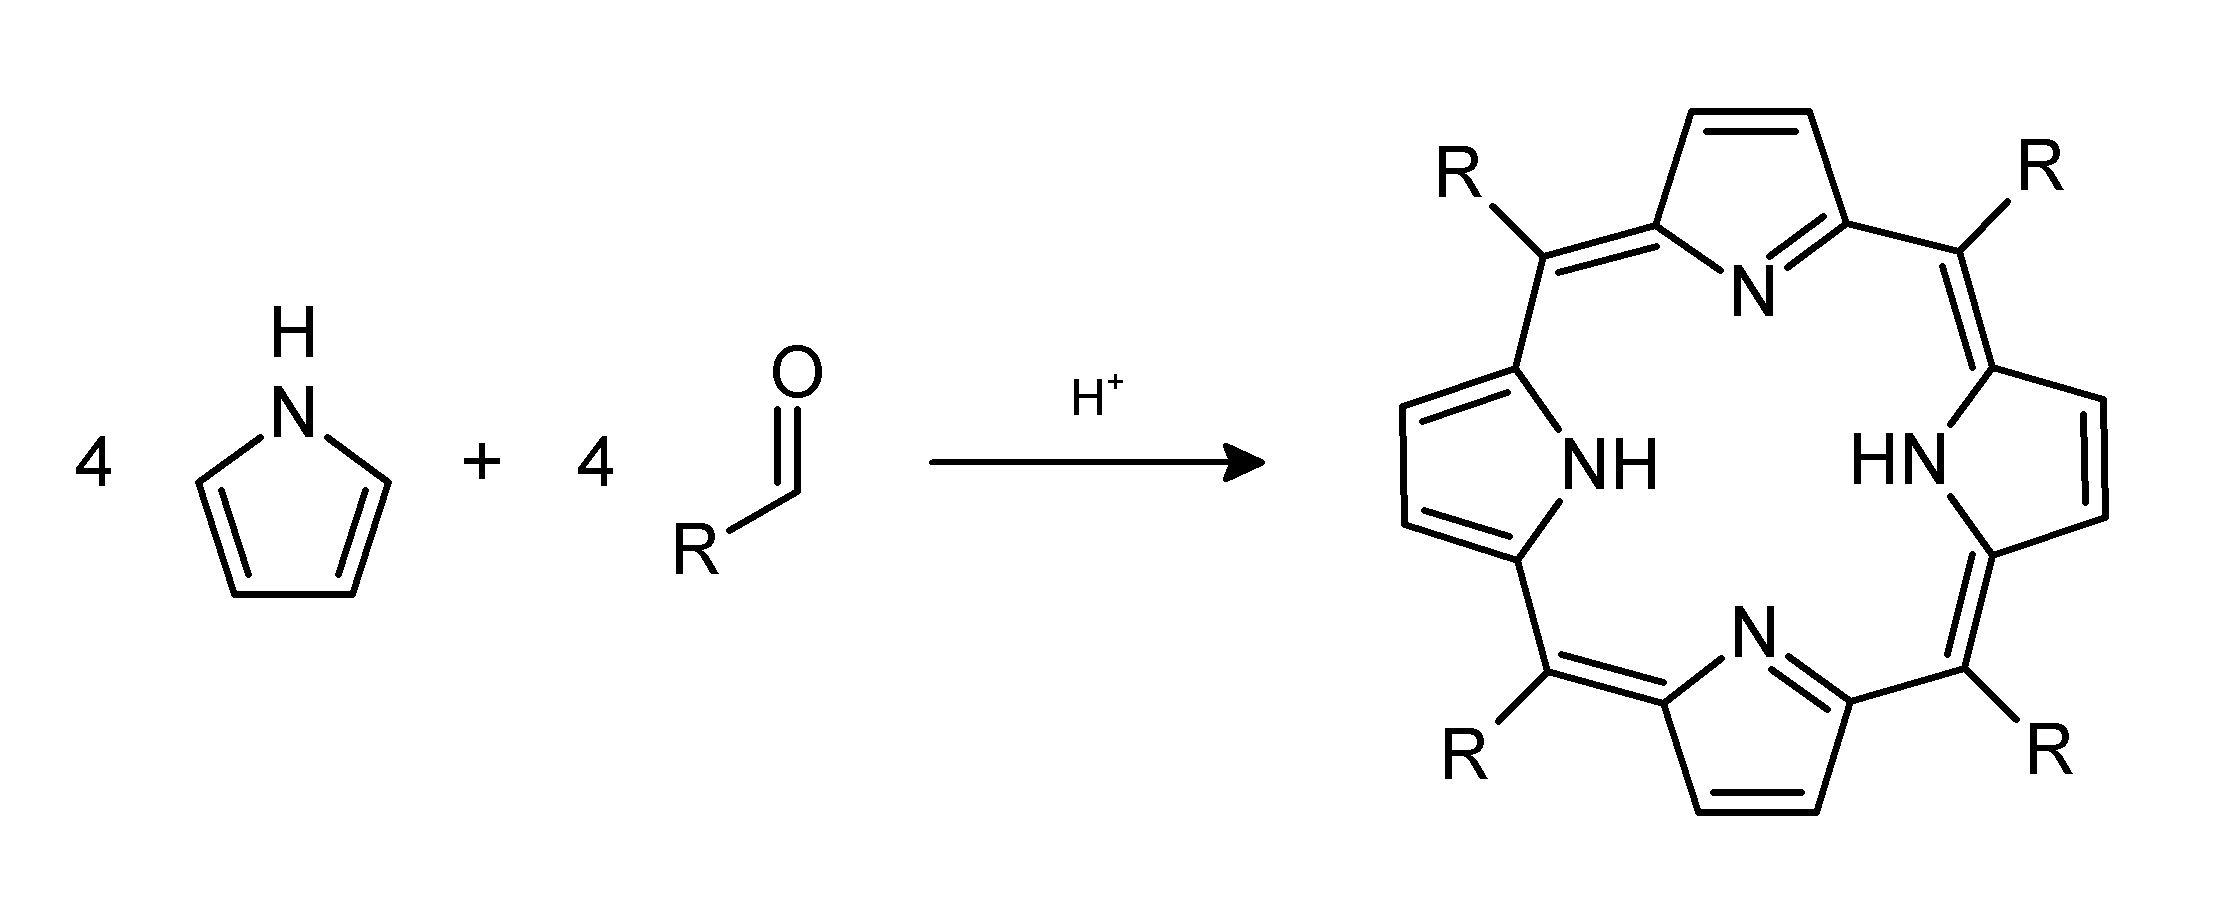 synthesis of acetaminophen View lab report - synthesis of acetaminophen from chem 123l at university of waterloo, waterloo introduction organic synthesis is a commonly used process in the scientific world as well as in.